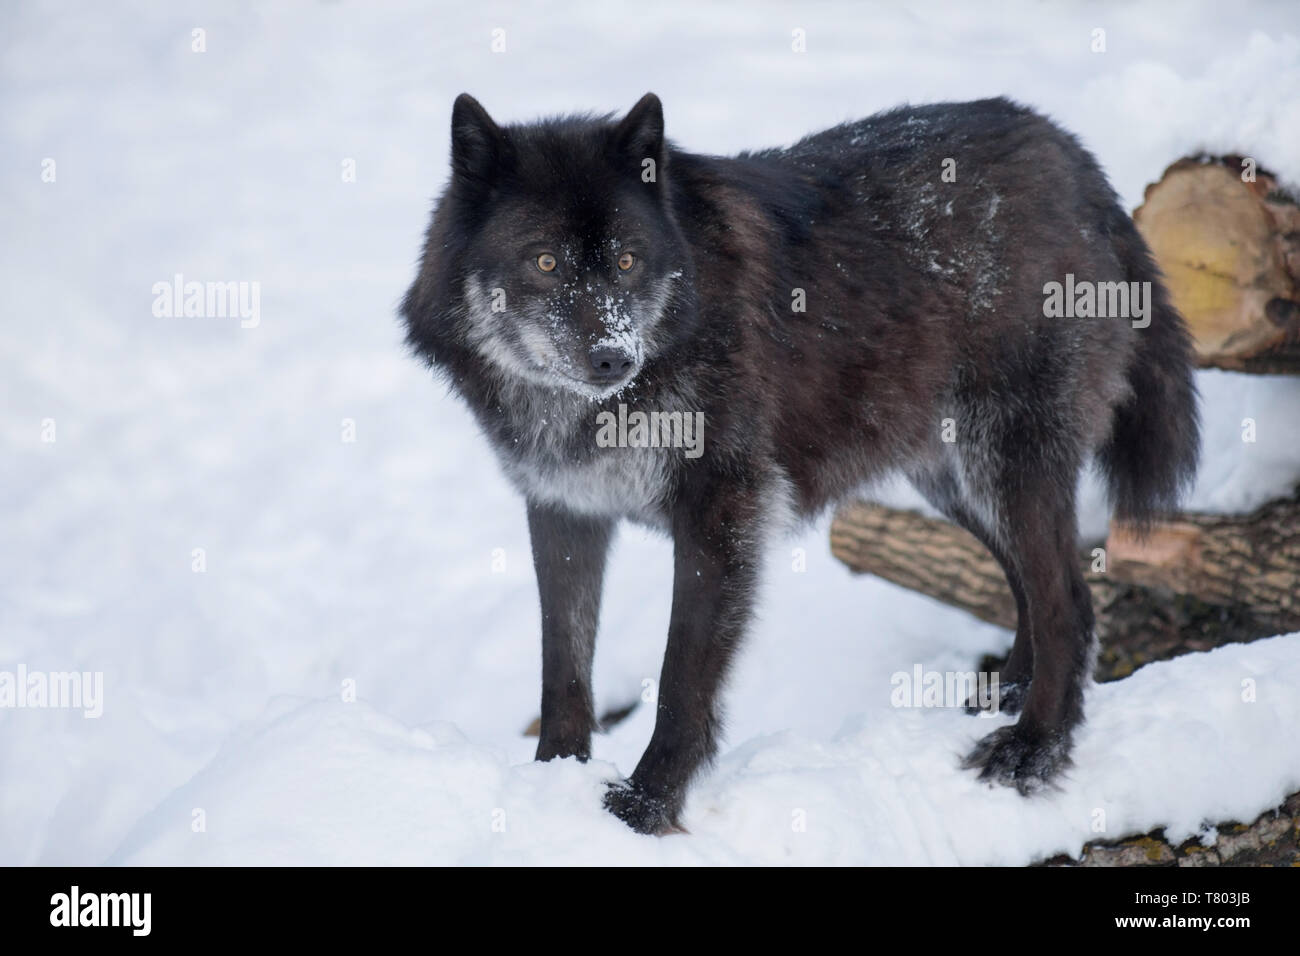 Black canadian wolf is standing on a white snow. Canis lupus pambasileus. Animals in wildlife. Stock Photo